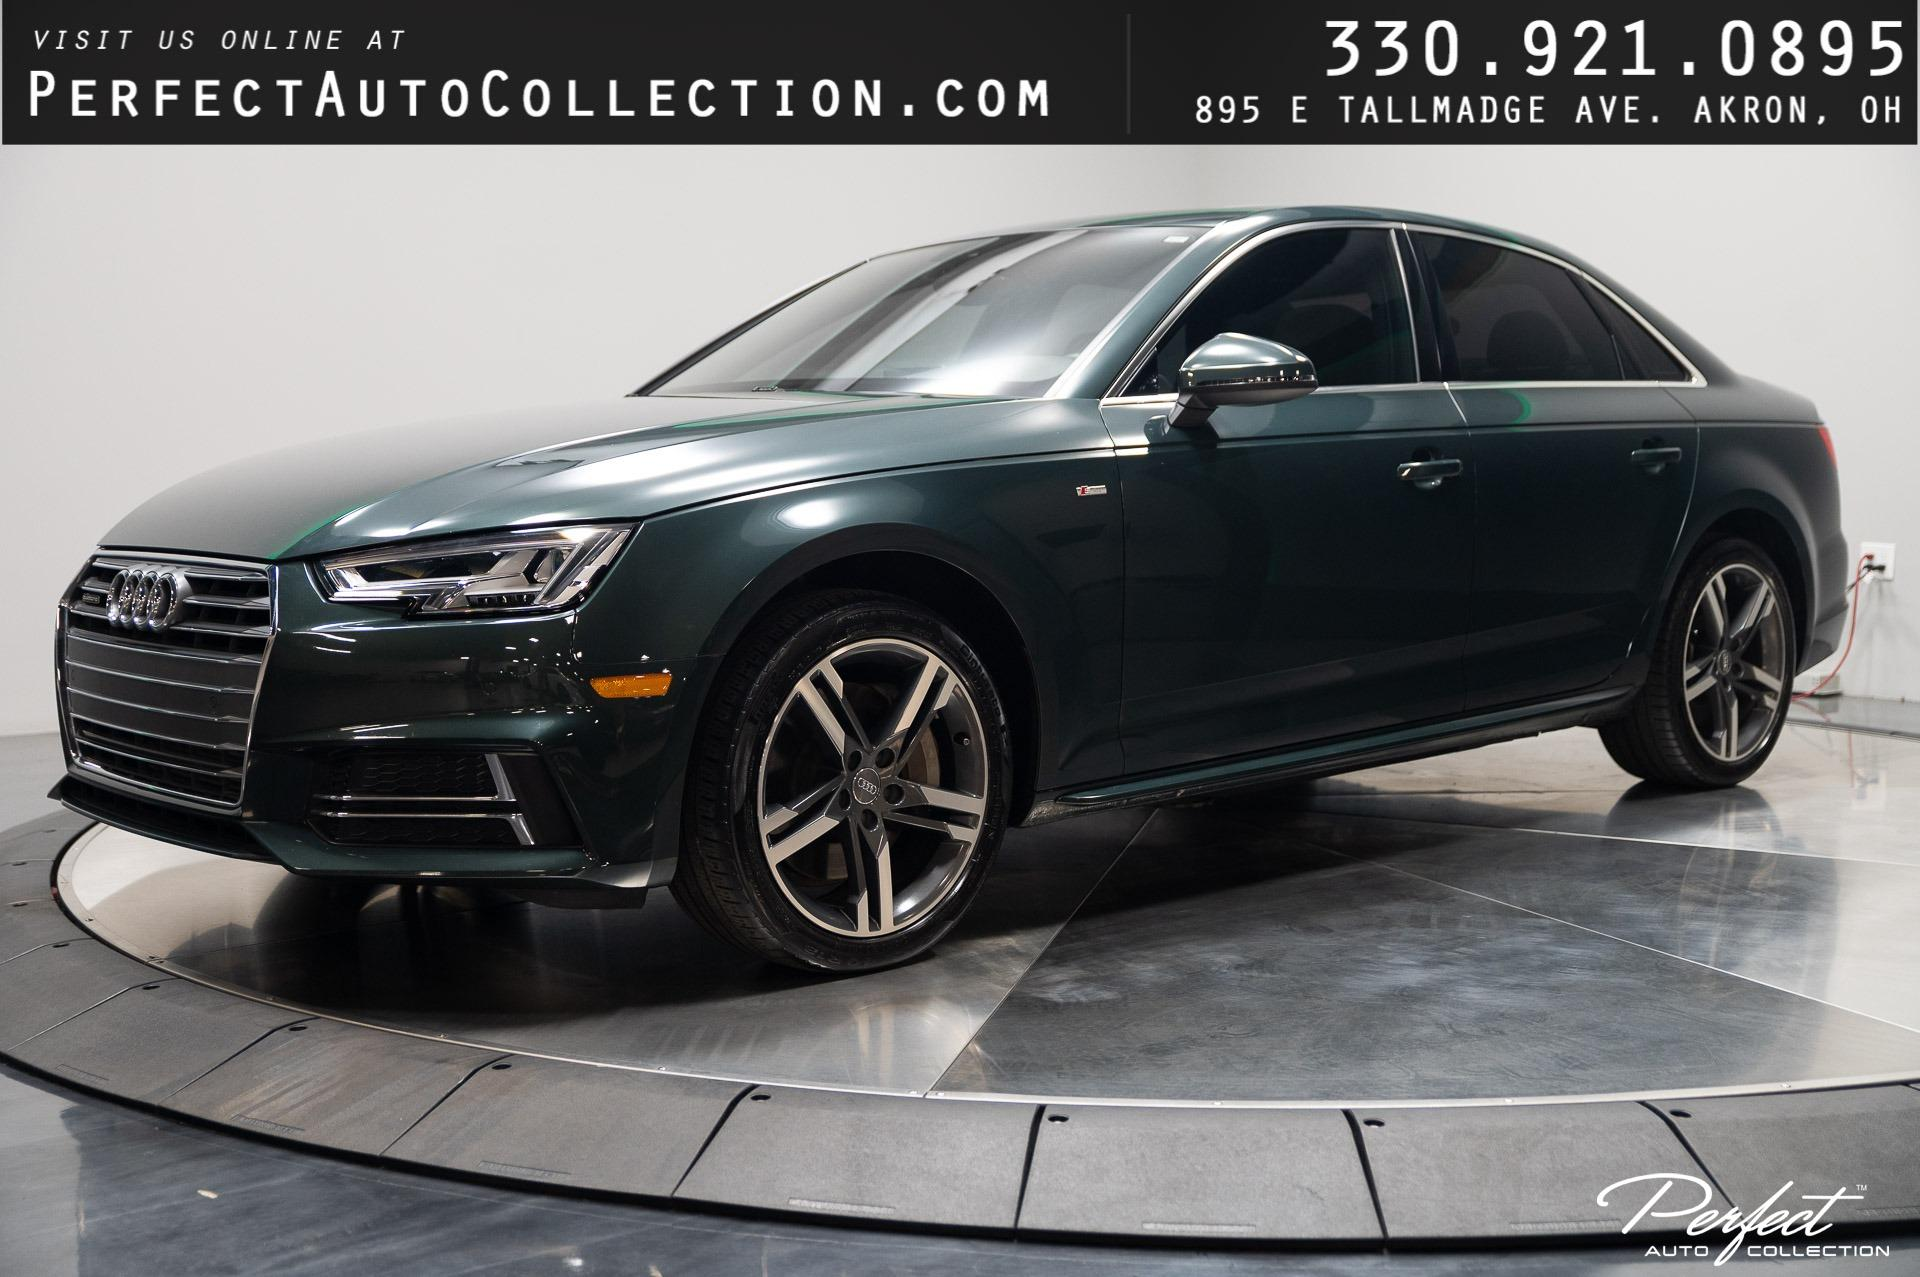 Used 2017 Audi A4 2.0T quattro Premium Plus for sale $26,495 at Perfect Auto Collection in Akron OH 44310 1